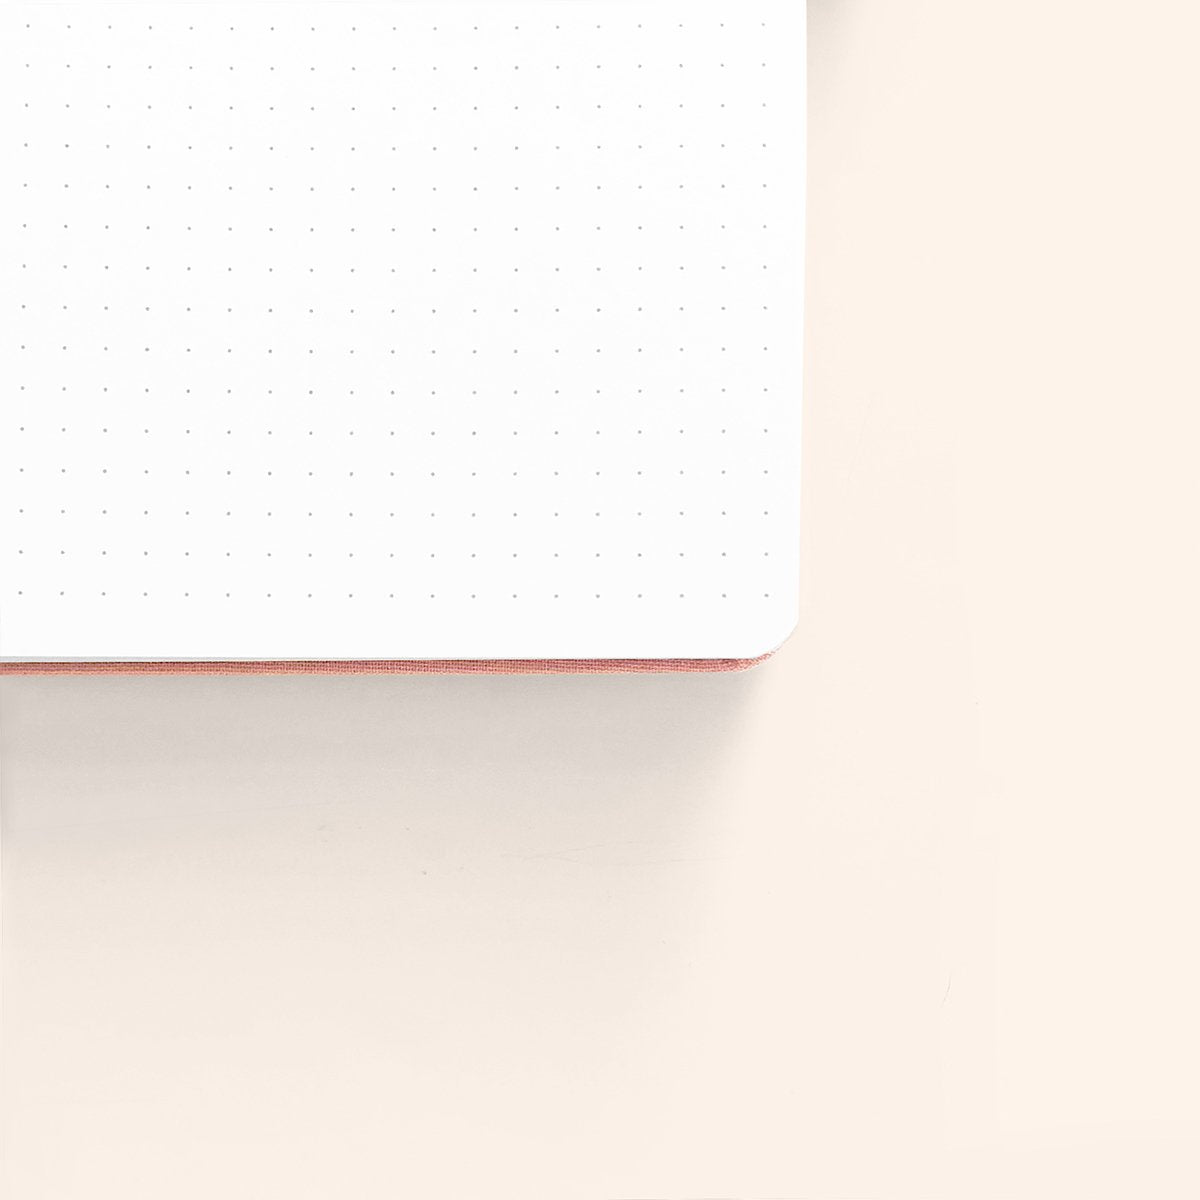 A5 DOT GRID NOTEBOOK WITH 192 PAGES : AUTUMNAL EQUINOX